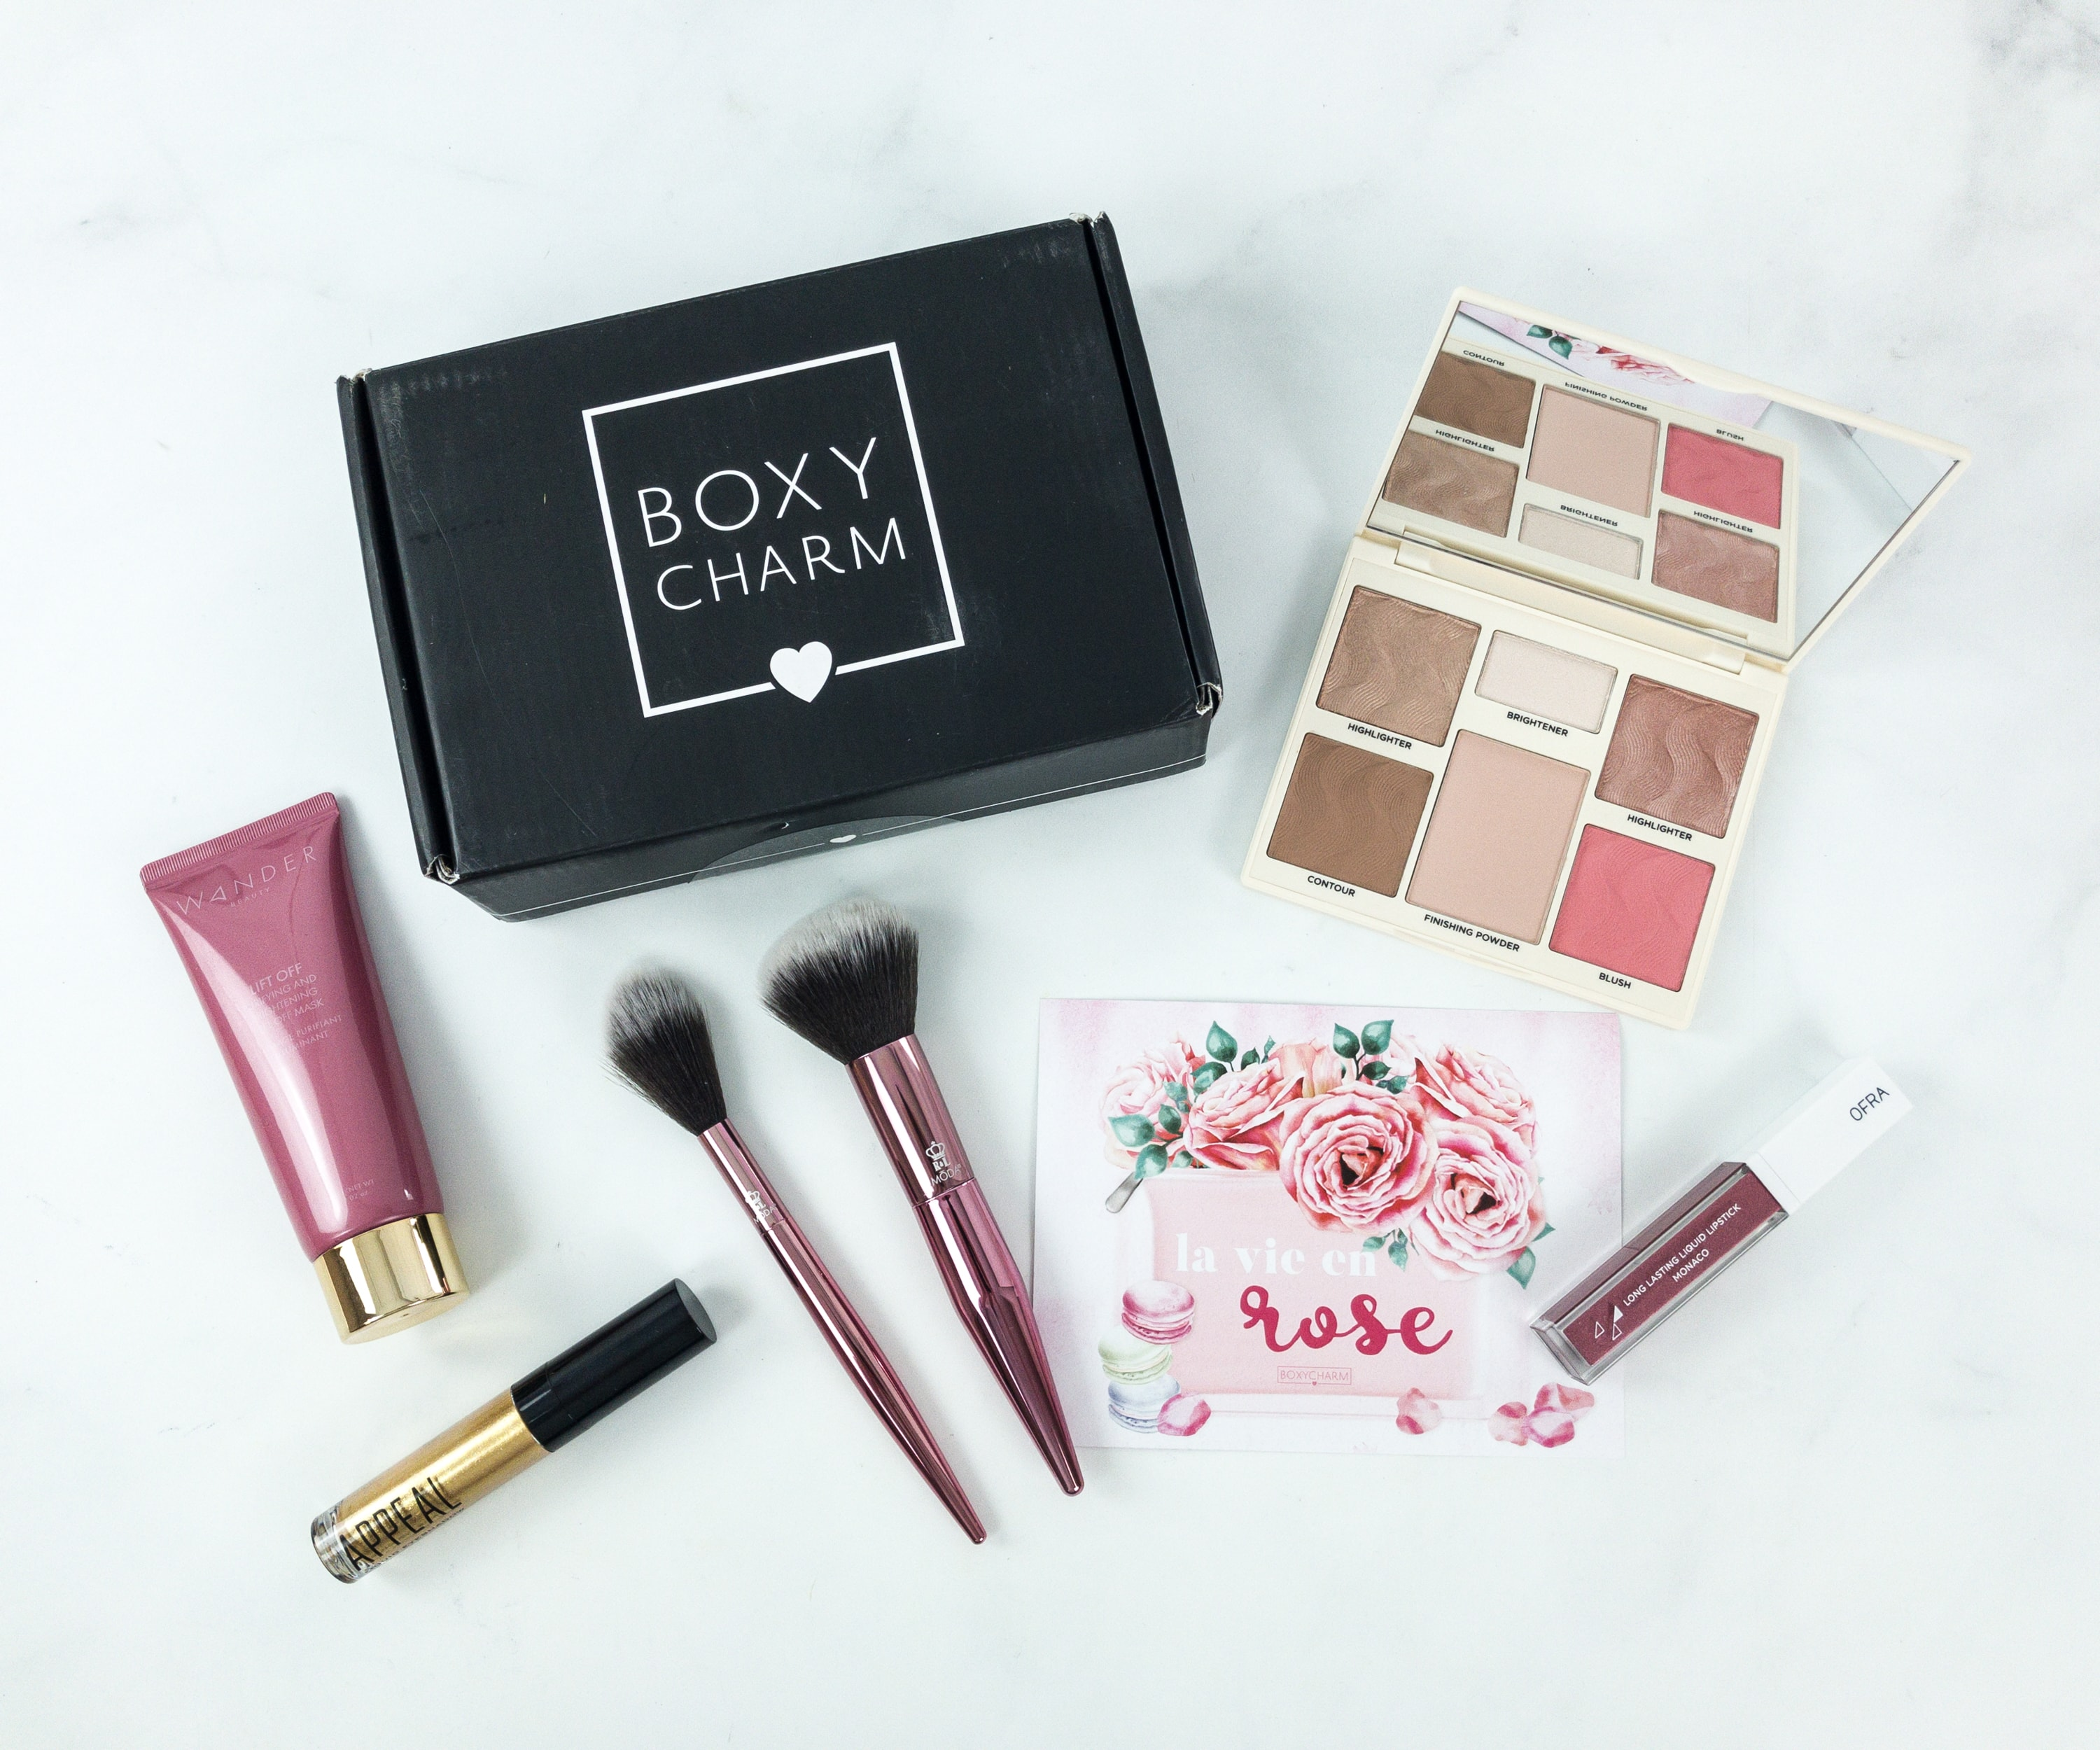 BOXYCHARM March 2019 Review